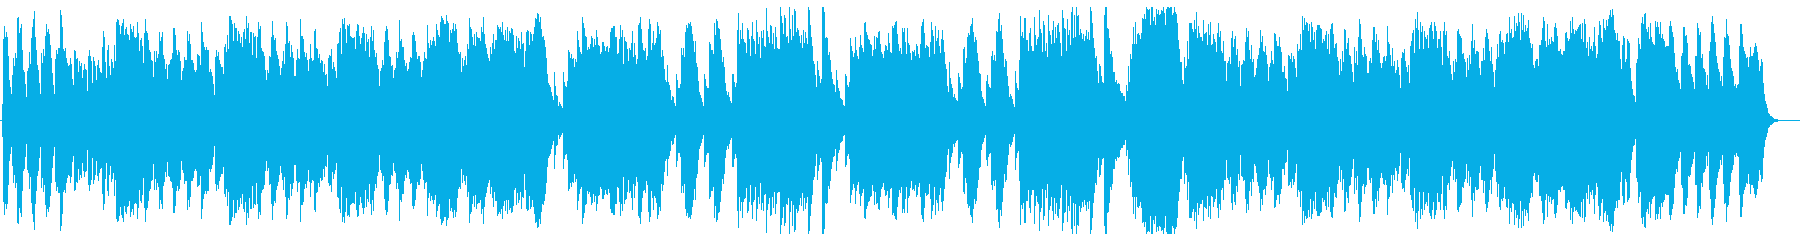 Spring Voice (J. Strauss II)'s reproduced waveform